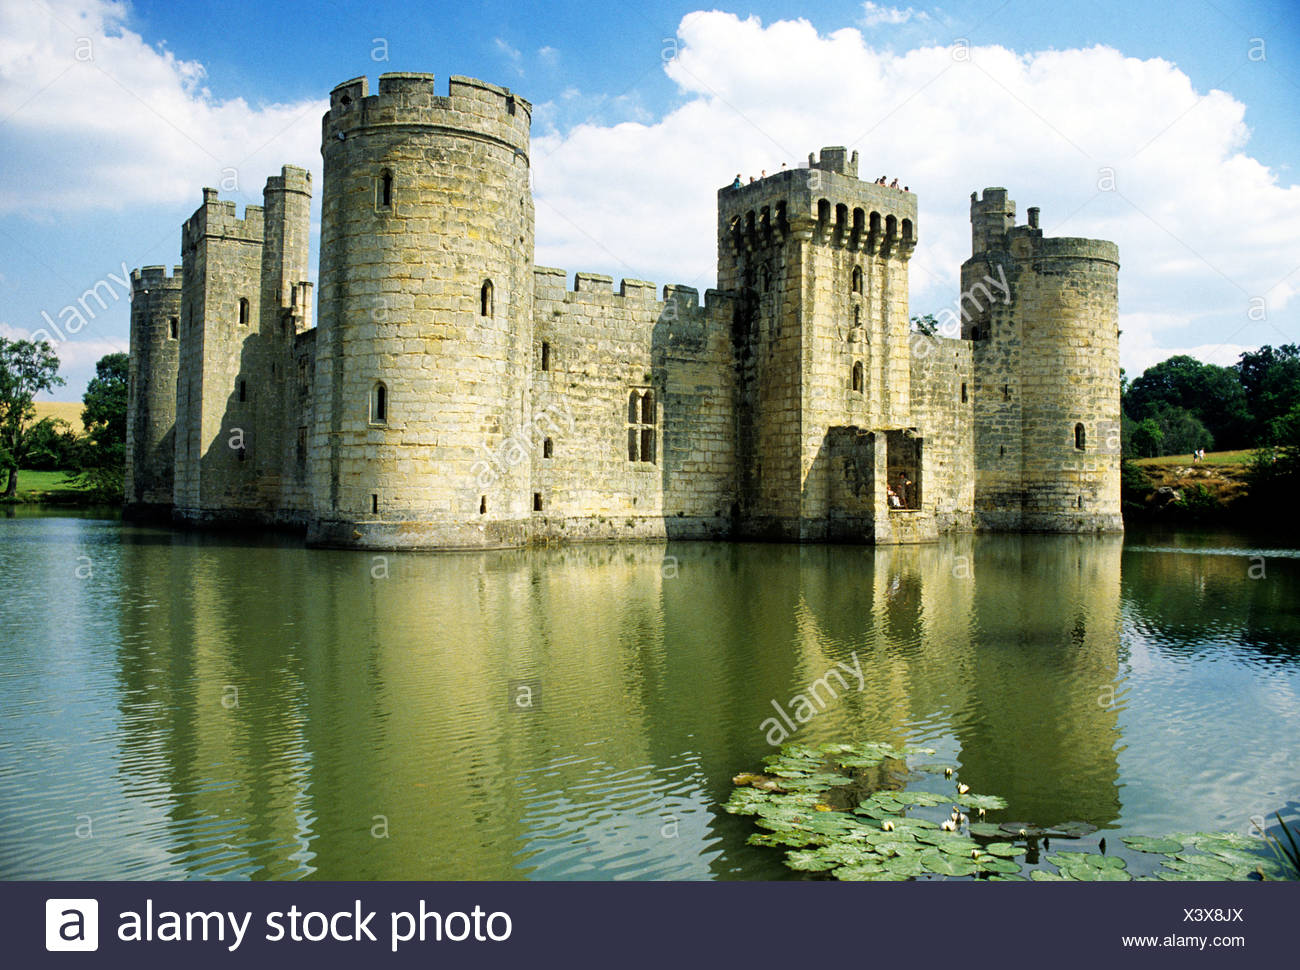 Bodiam Castle and Moat, Sussex England UK English medieval castles moats moated tower towers - Stock Image